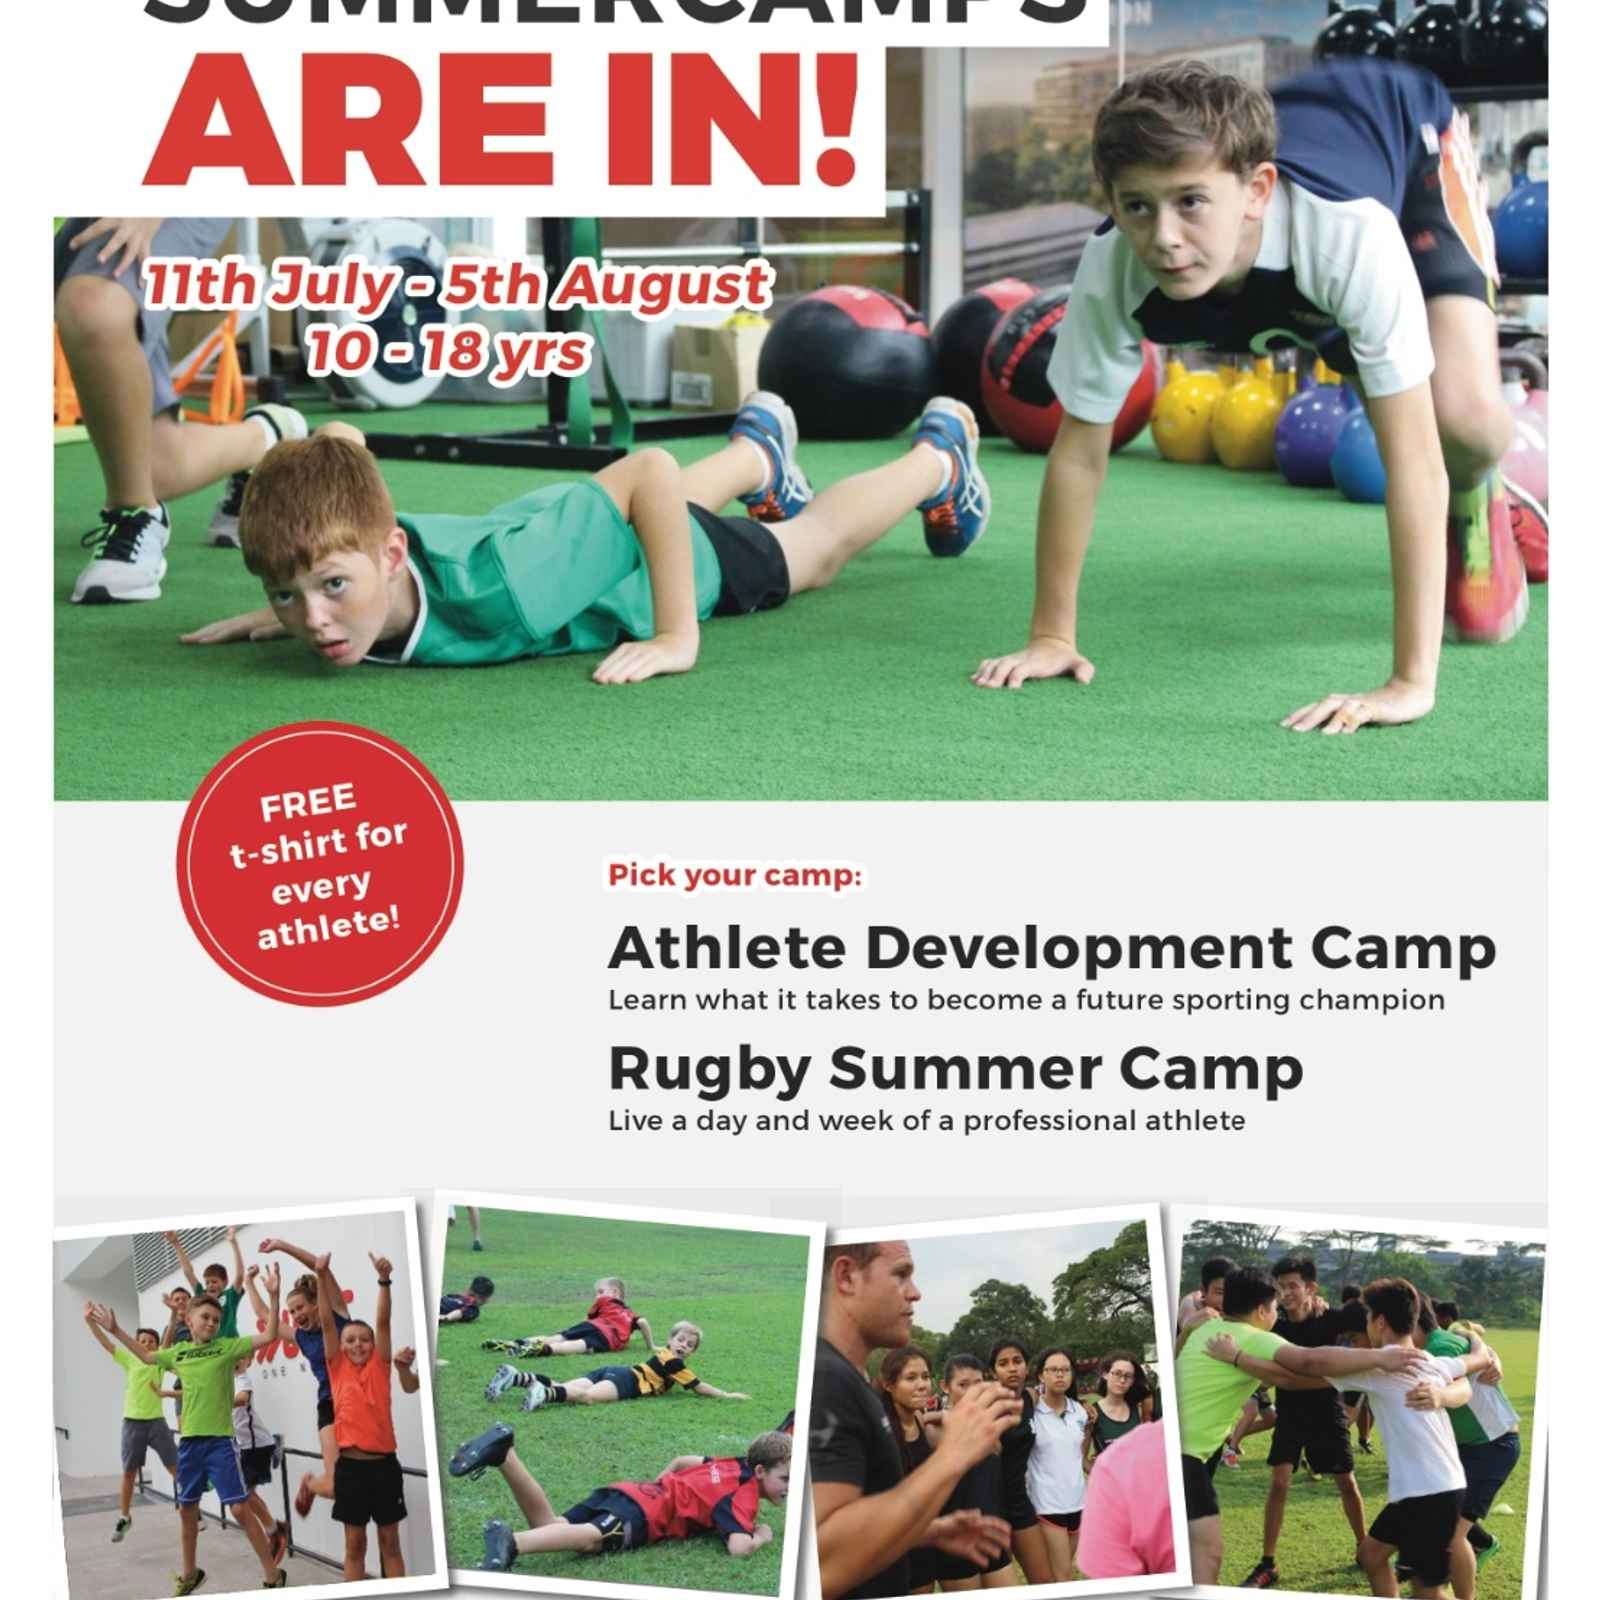 UFIT Athletic Development and Rugby Camp 11th July - 5th August